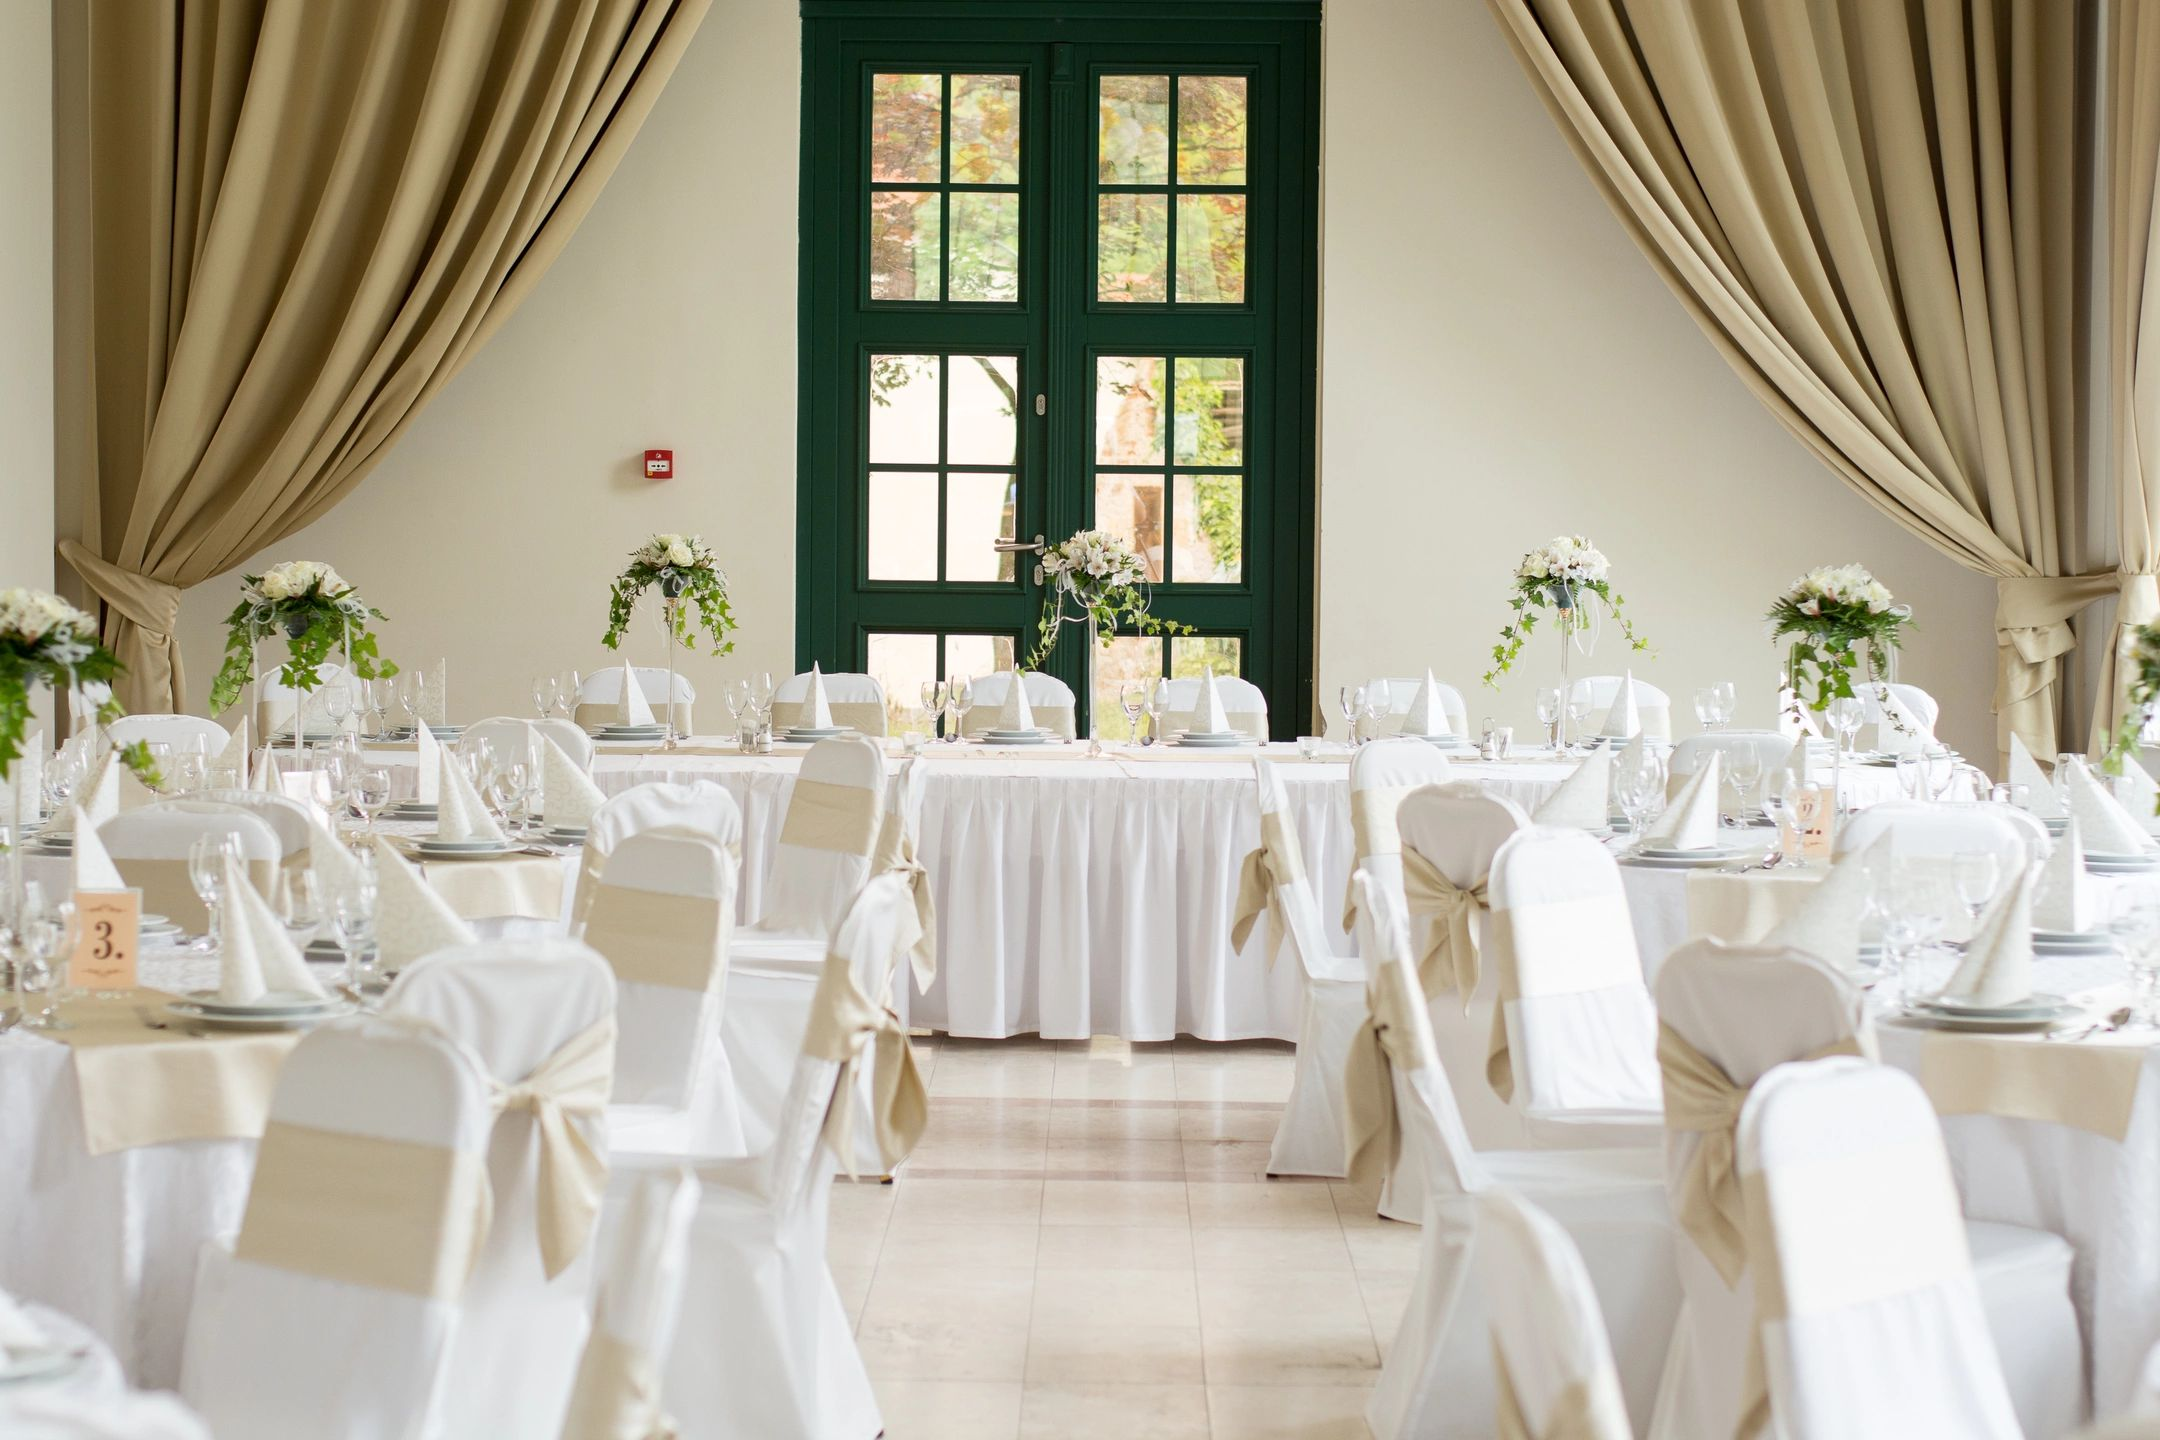 wedding reception room white and beige neutral with greenery centerpieces draping and green french doors